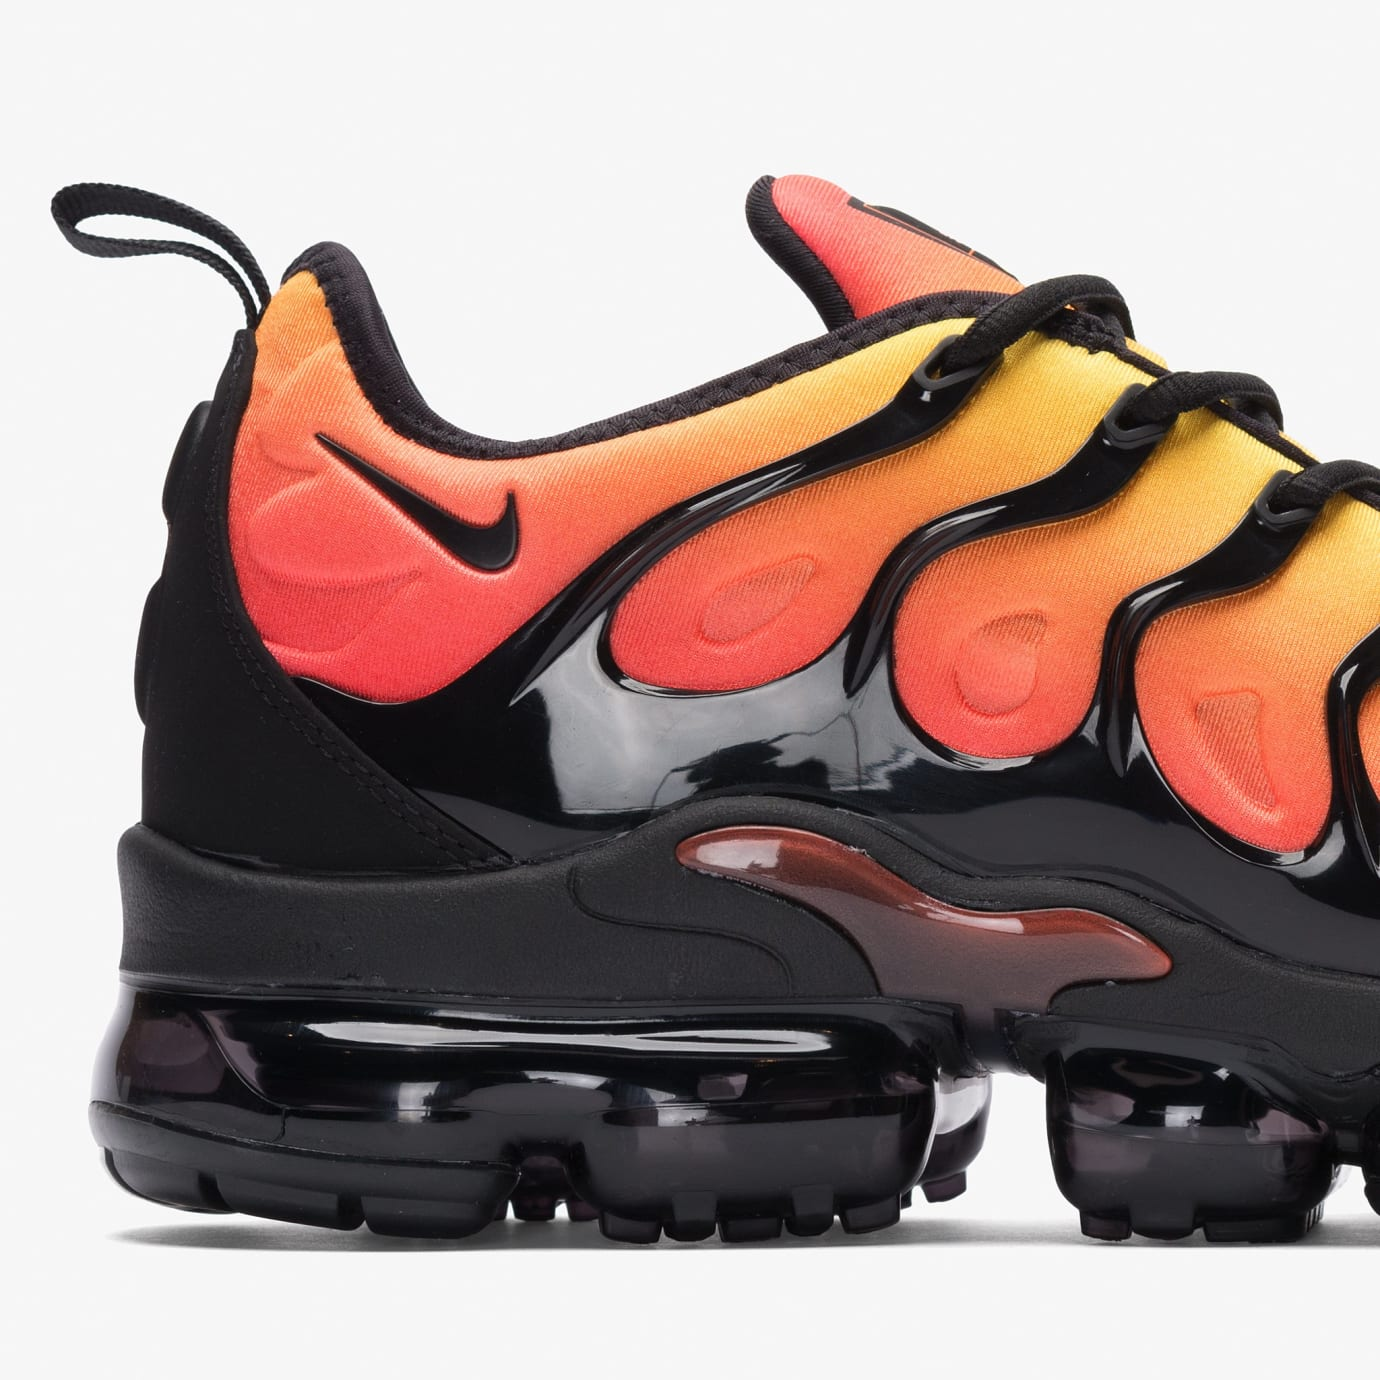 f2d89371d13 Image via Bows and Arrows · Nike VaporMax Plus  Sunset  Black Total Orange  (Heel)